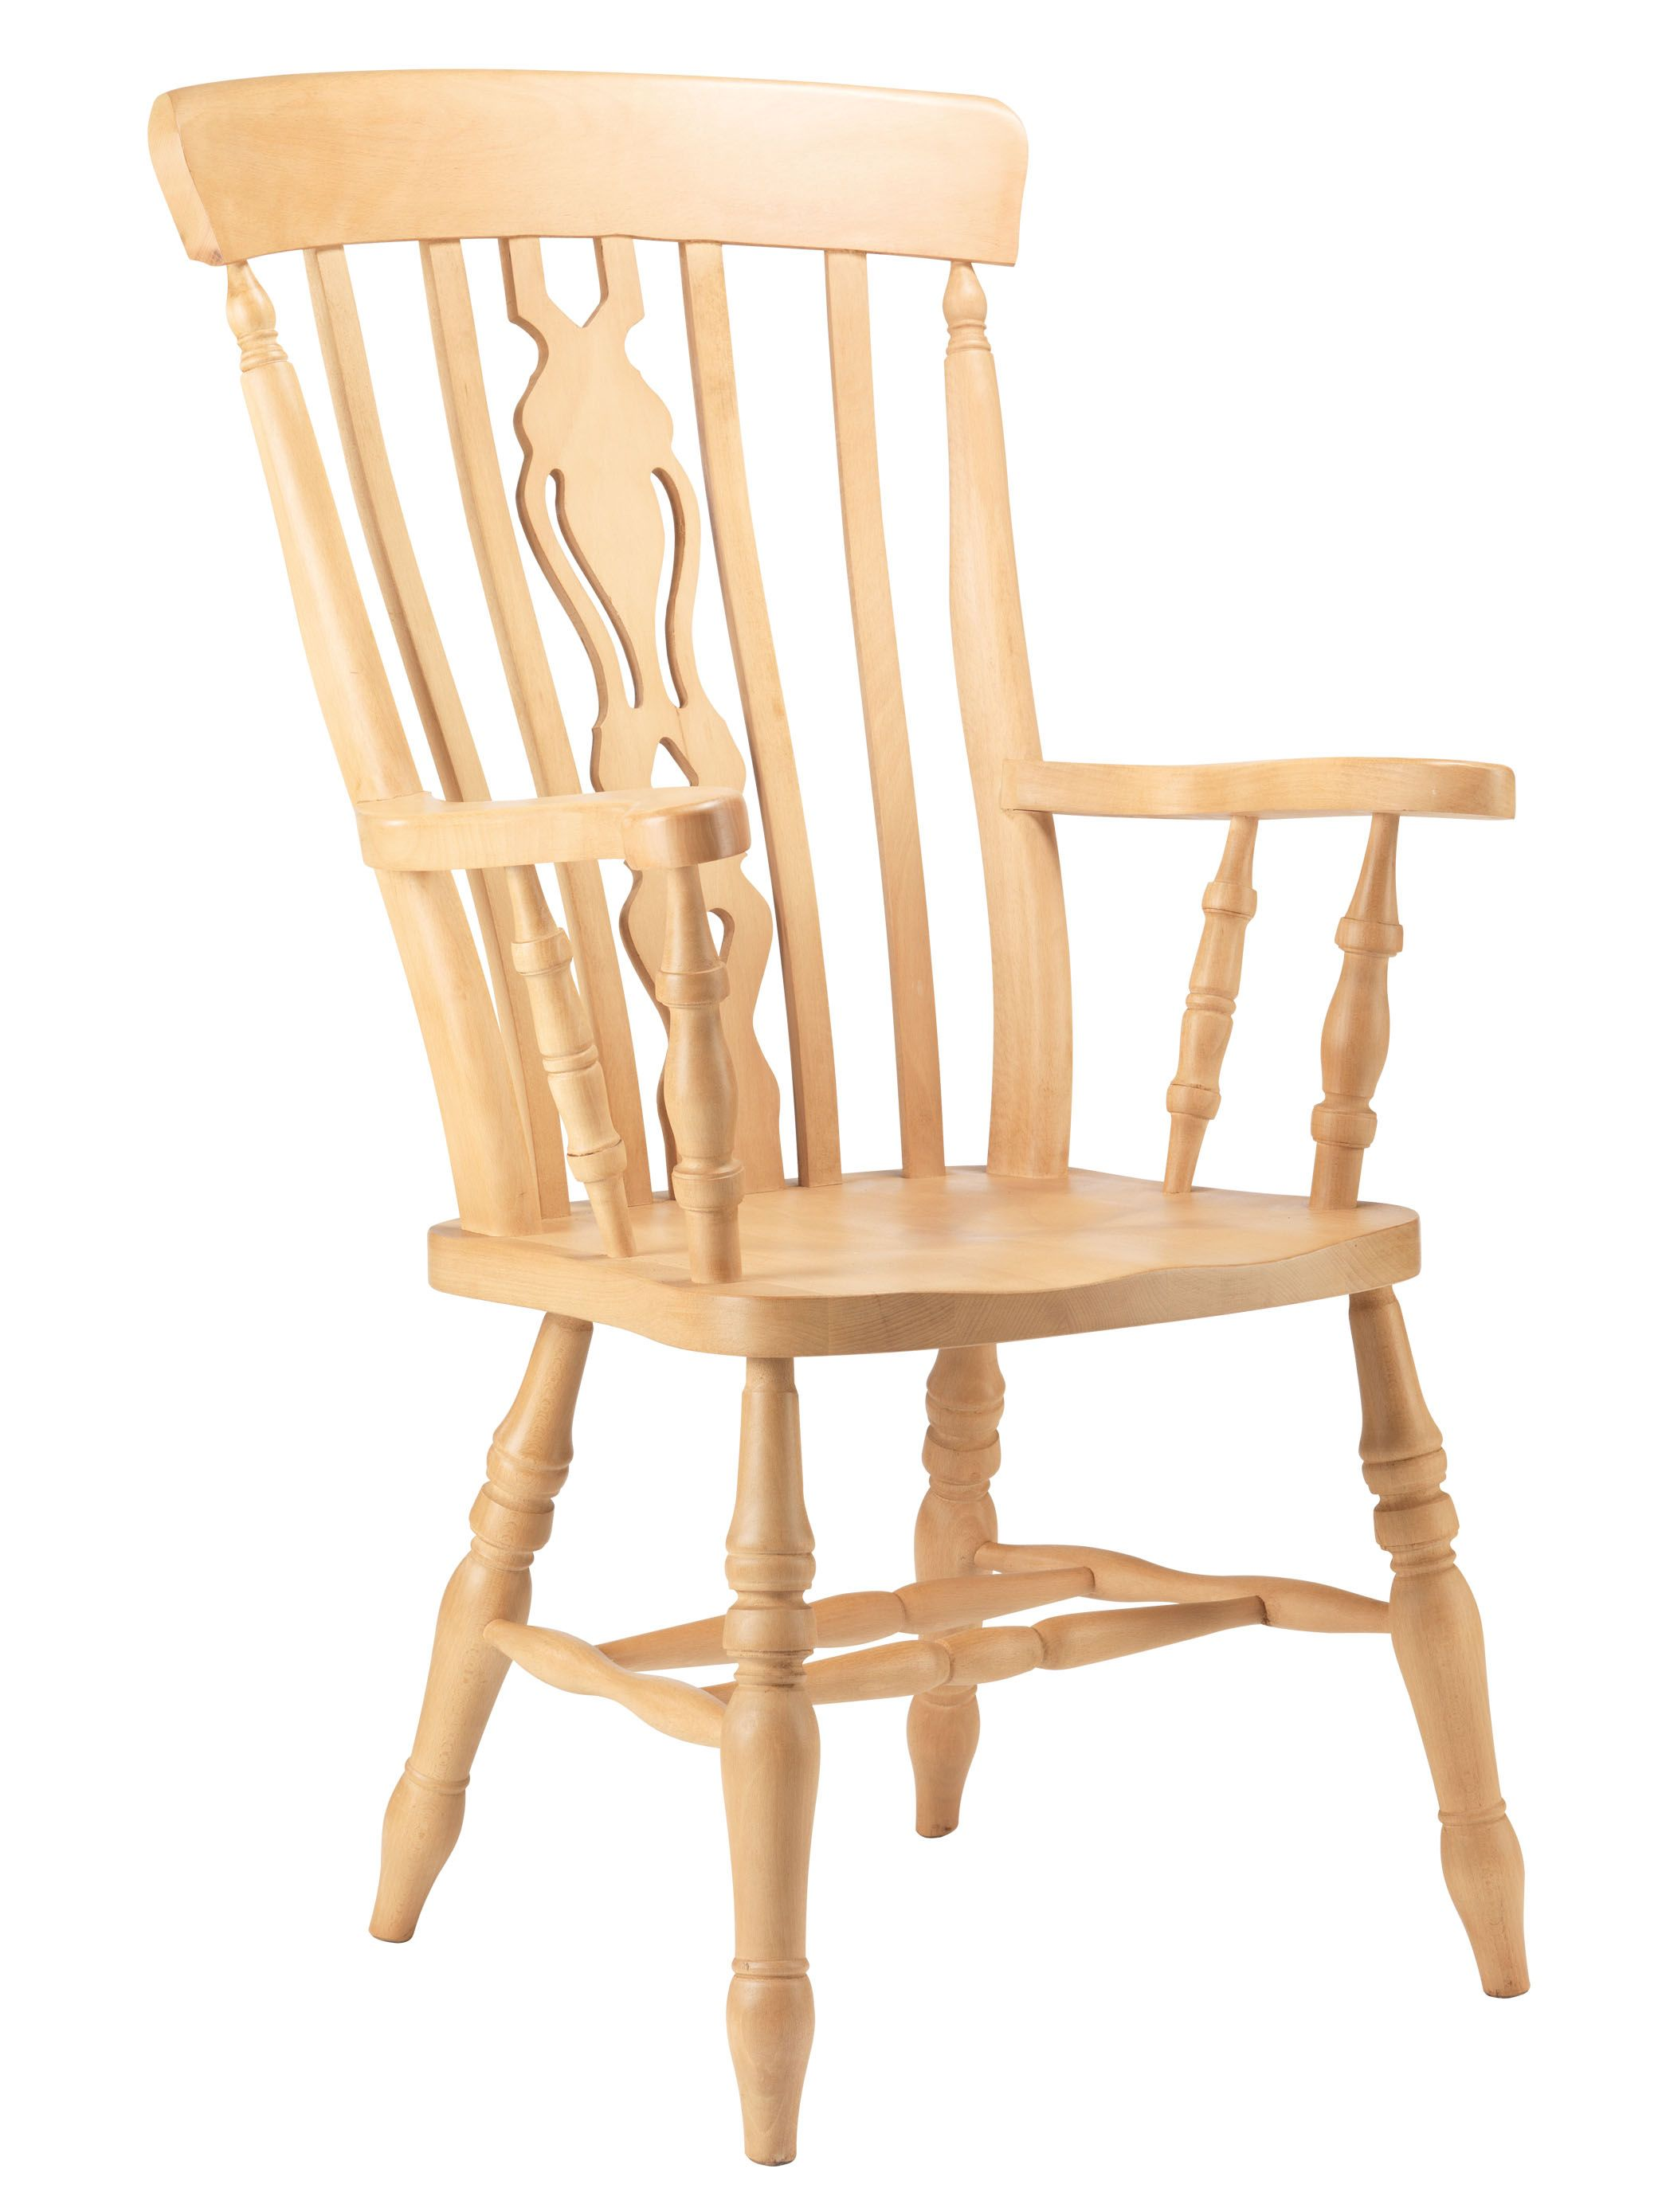 Brilliant Fiddle Back Grandfather Chair Made From Solid Beech A Inzonedesignstudio Interior Chair Design Inzonedesignstudiocom